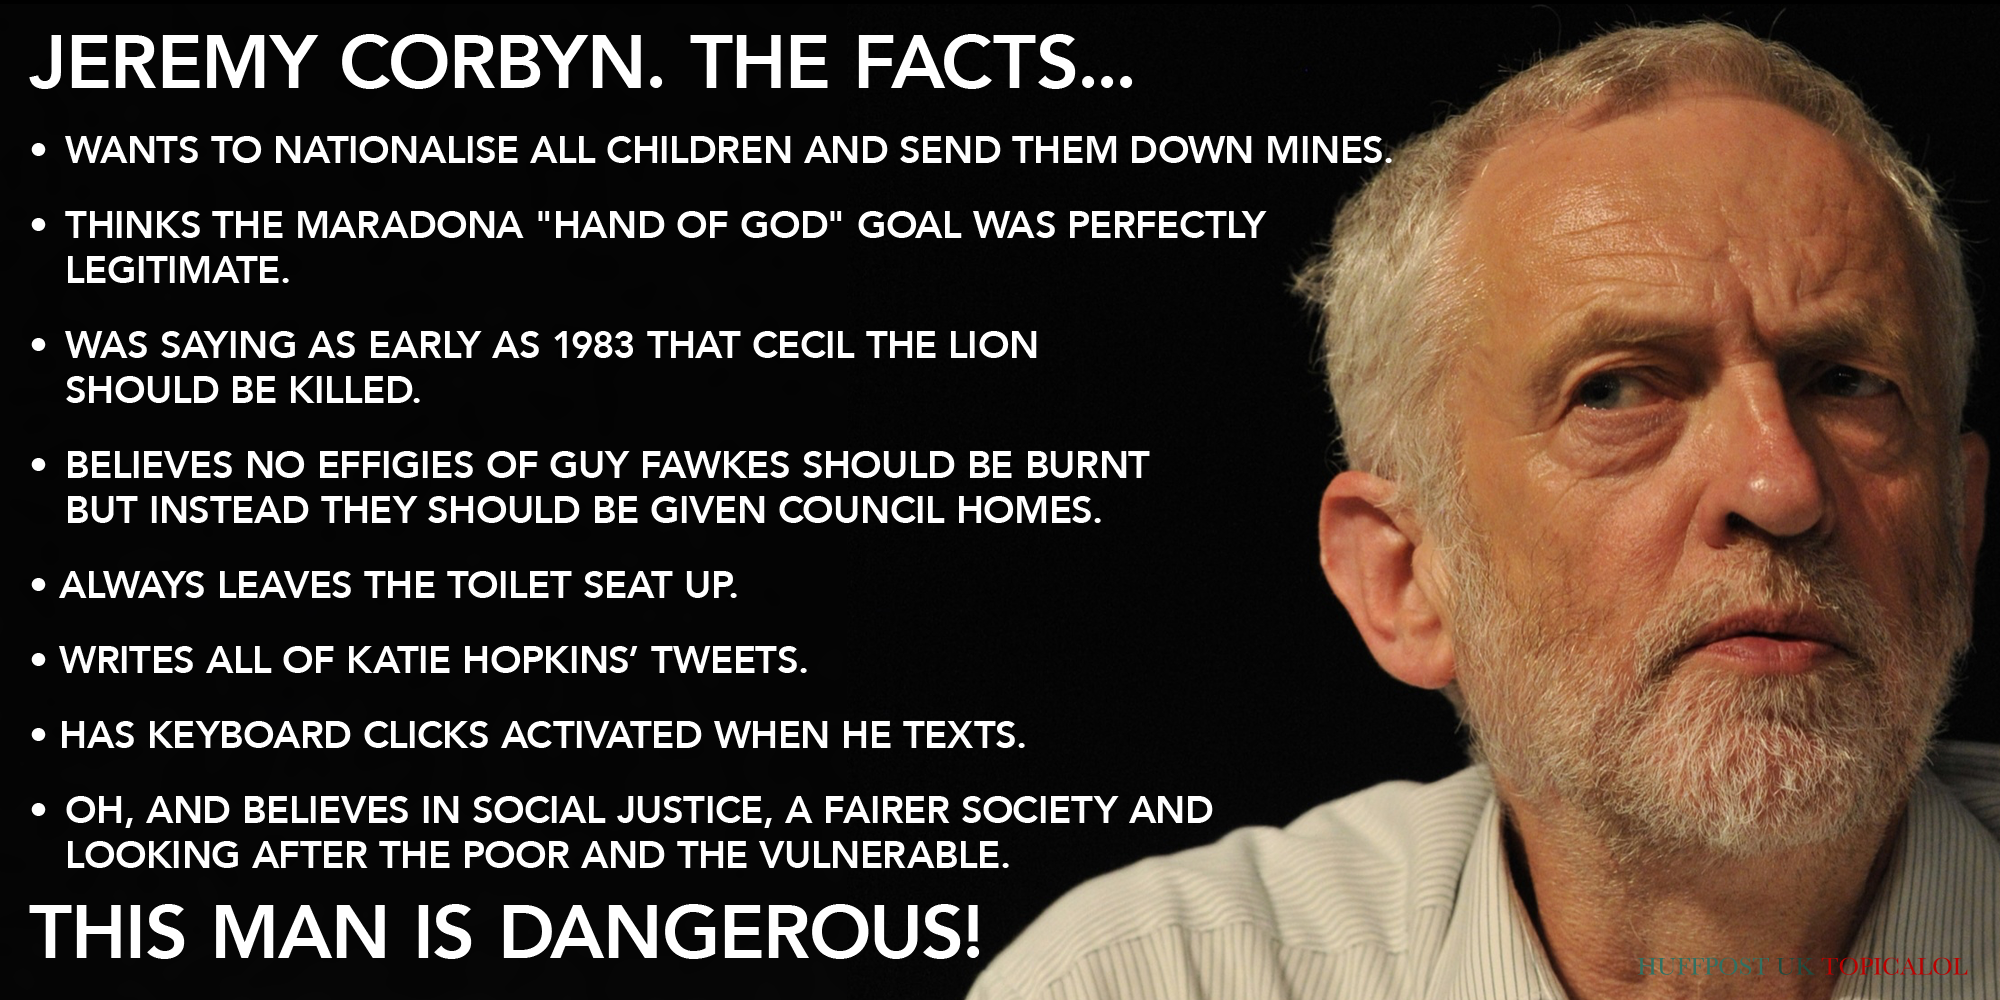 The facts about Jeremy Corbyn: http://t.co/d86XQwbYKm http://t.co/FwEzol5nIB